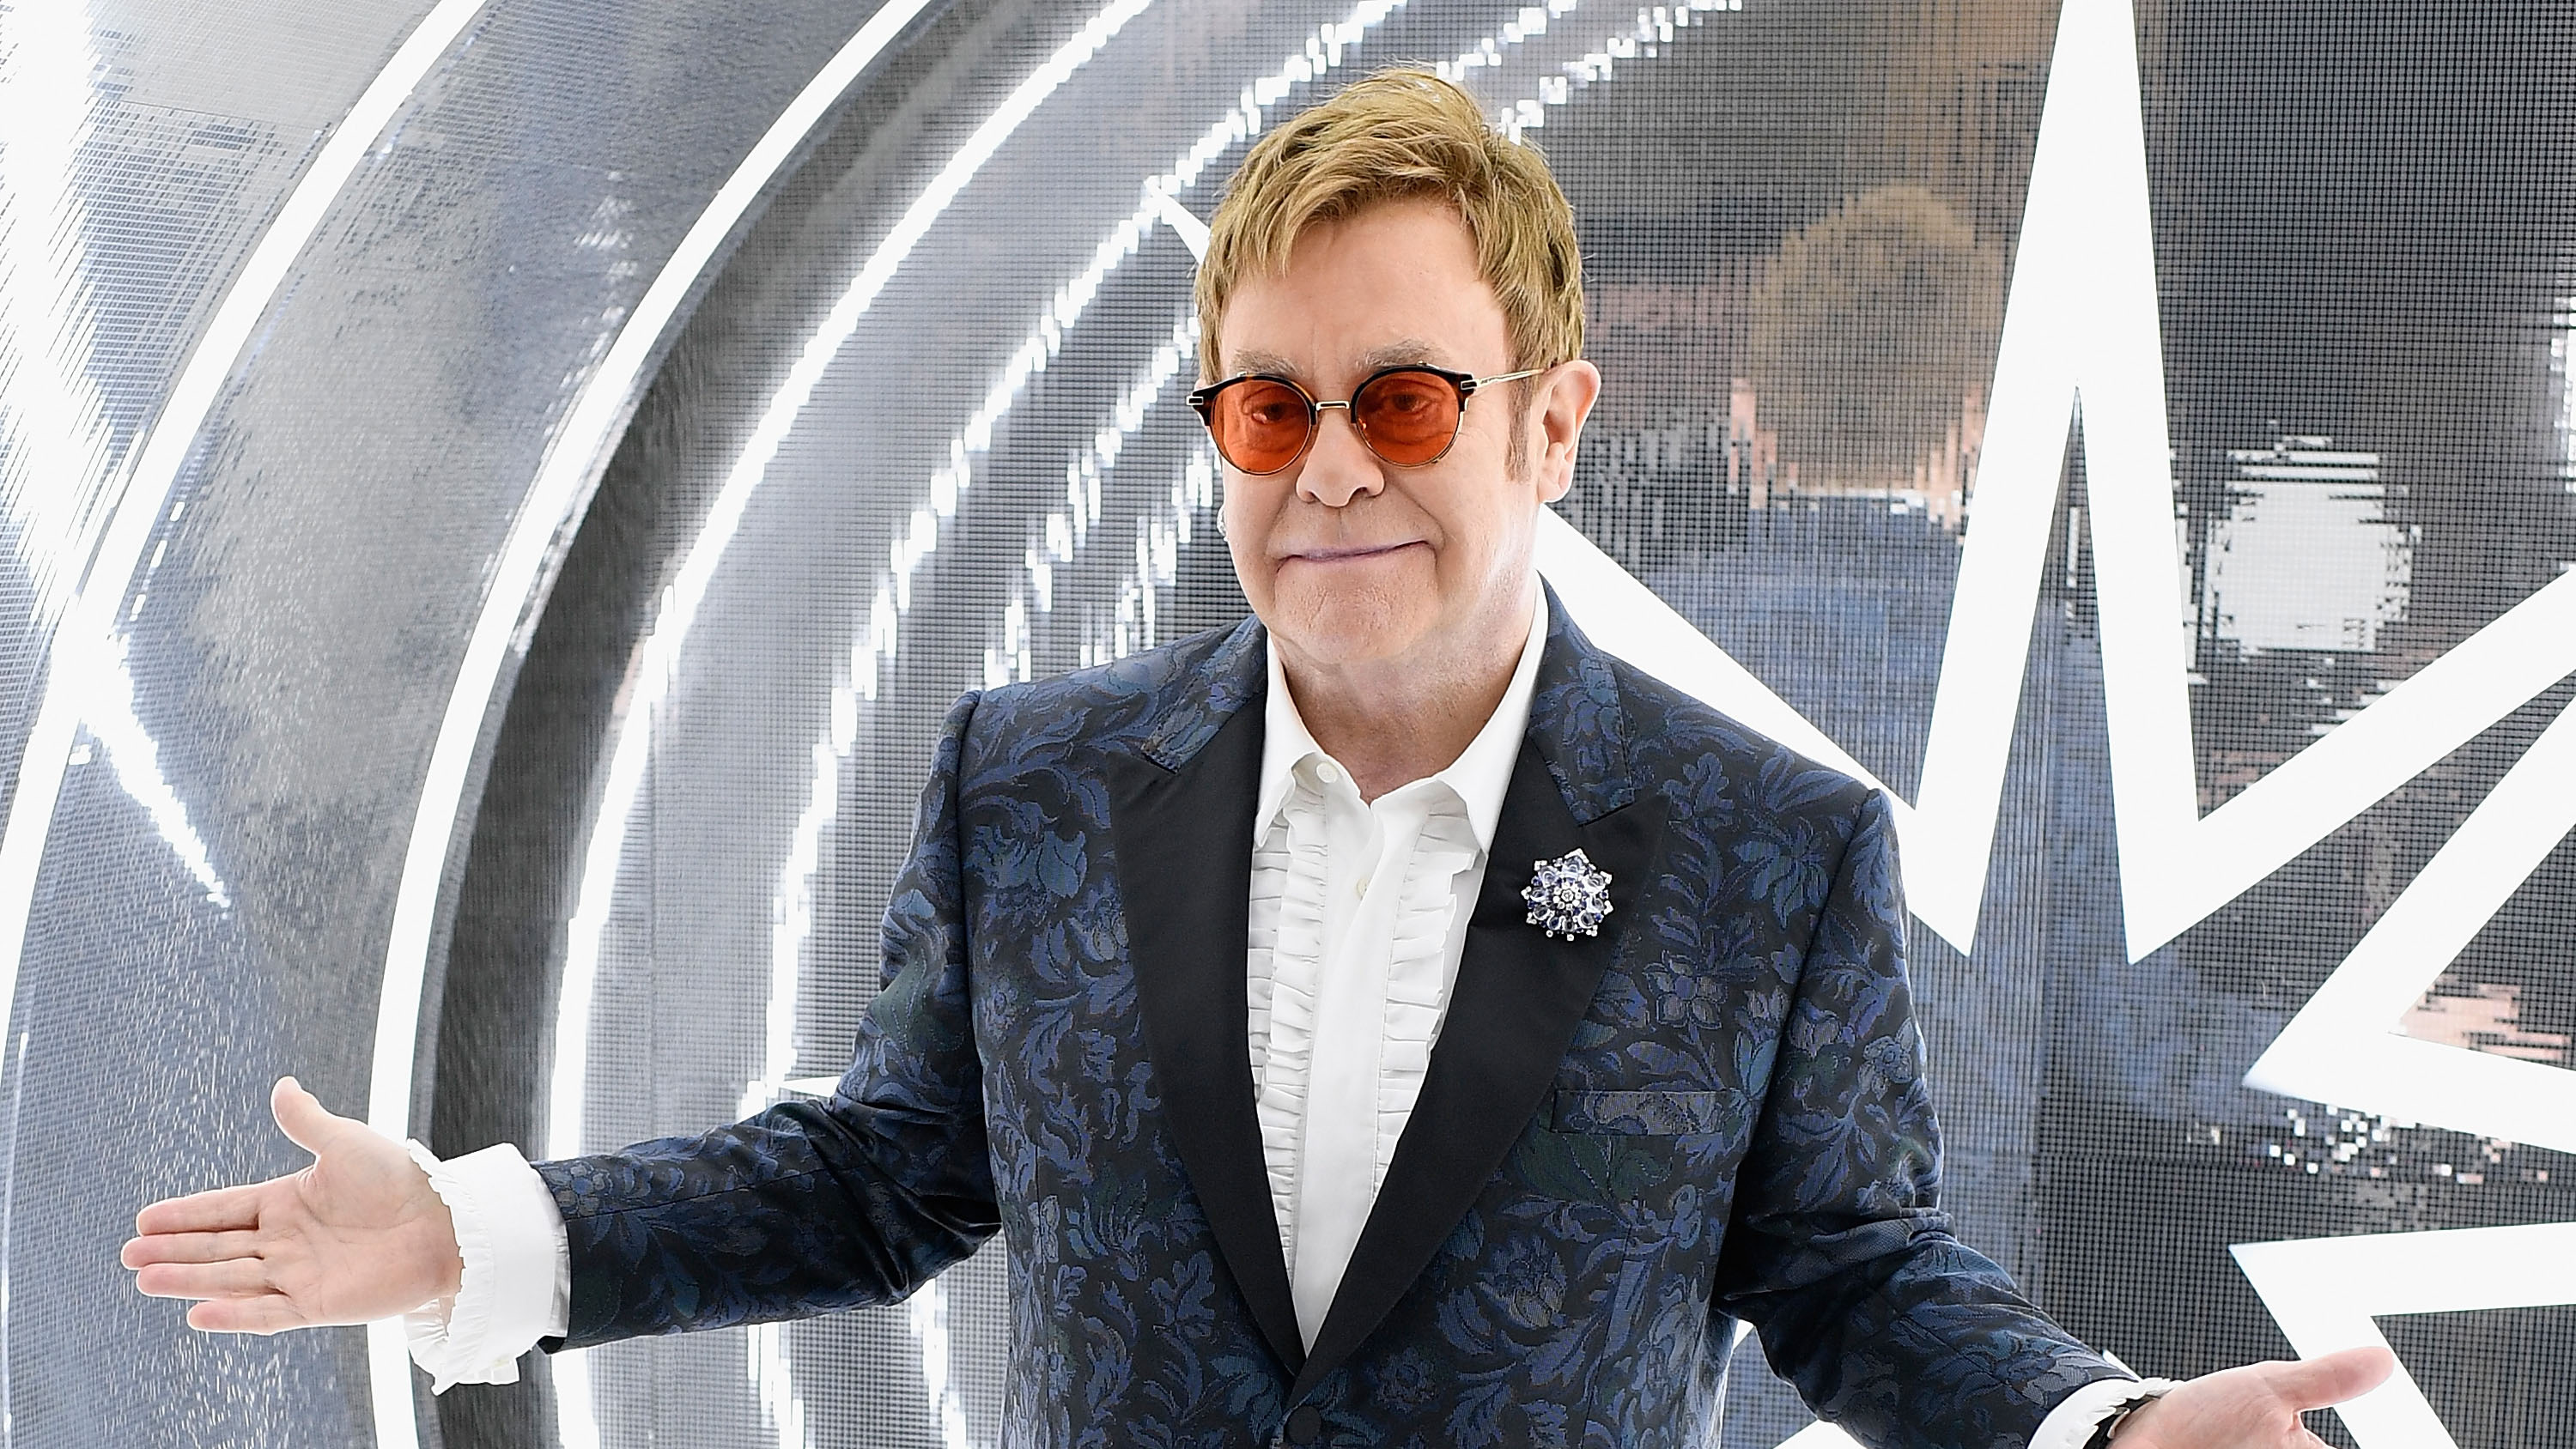 Westlake Legal Group Elton-John Elton John reveals he wore diaper, and used it, during Las Vegas show: 'If they only knew' Julius Young fox-news/entertainment/music fox-news/entertainment/celebrity-news fox news fnc/entertainment fnc article 324a3c1d-6d59-5c21-a63d-18613e29df09